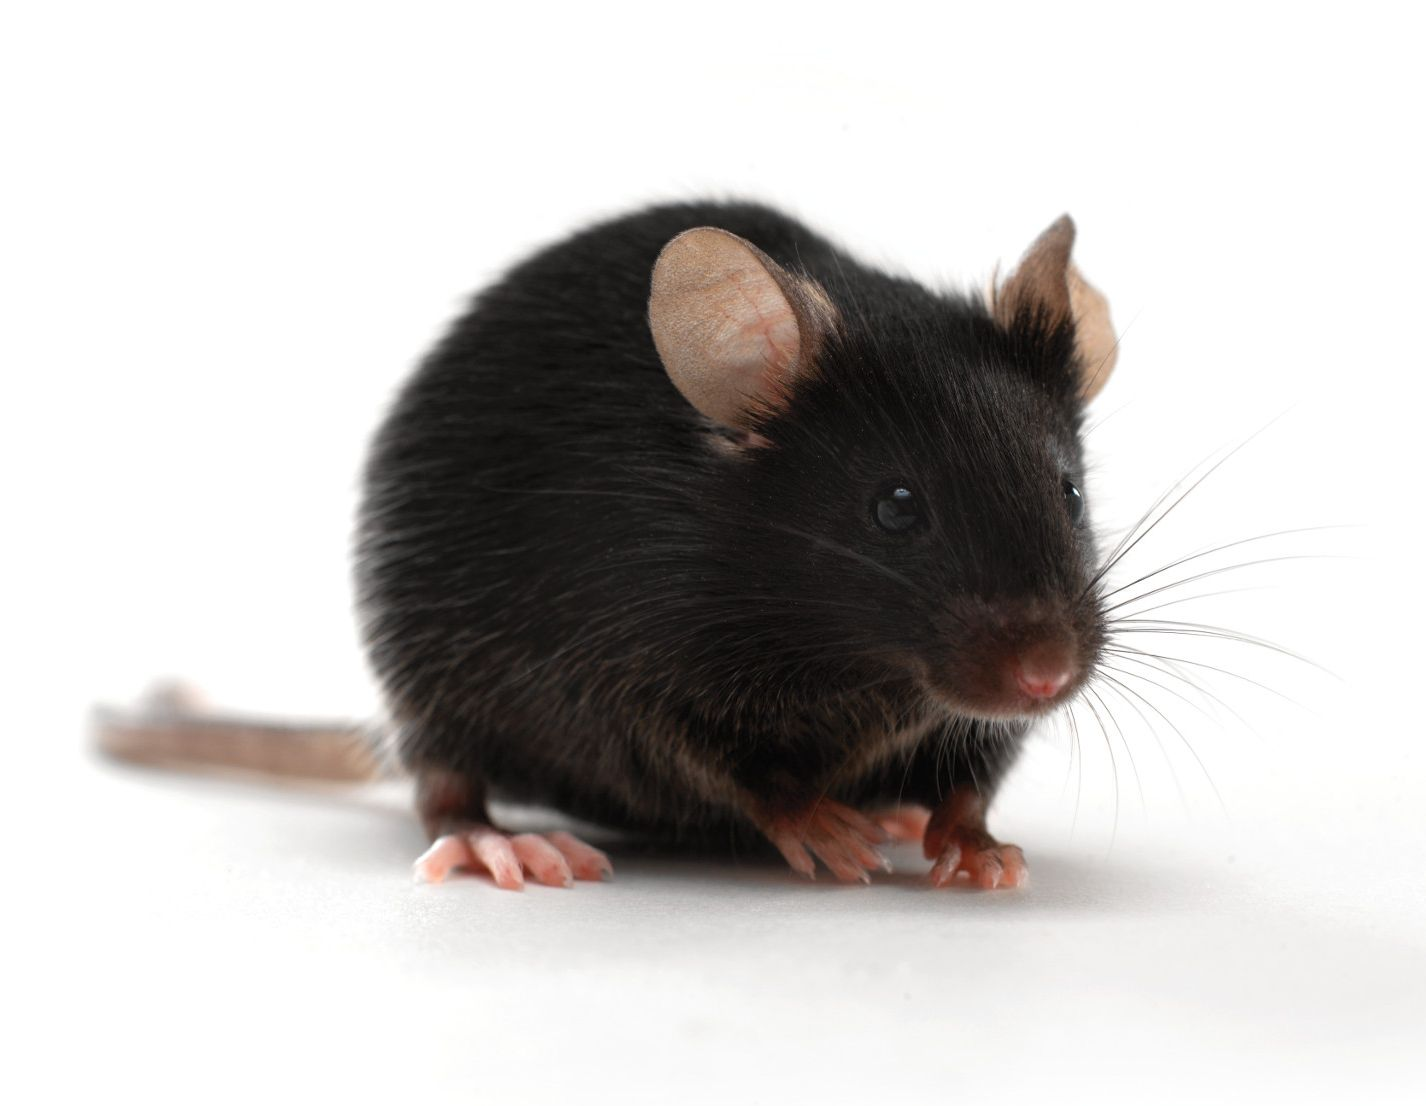 C57 black mouse on white background